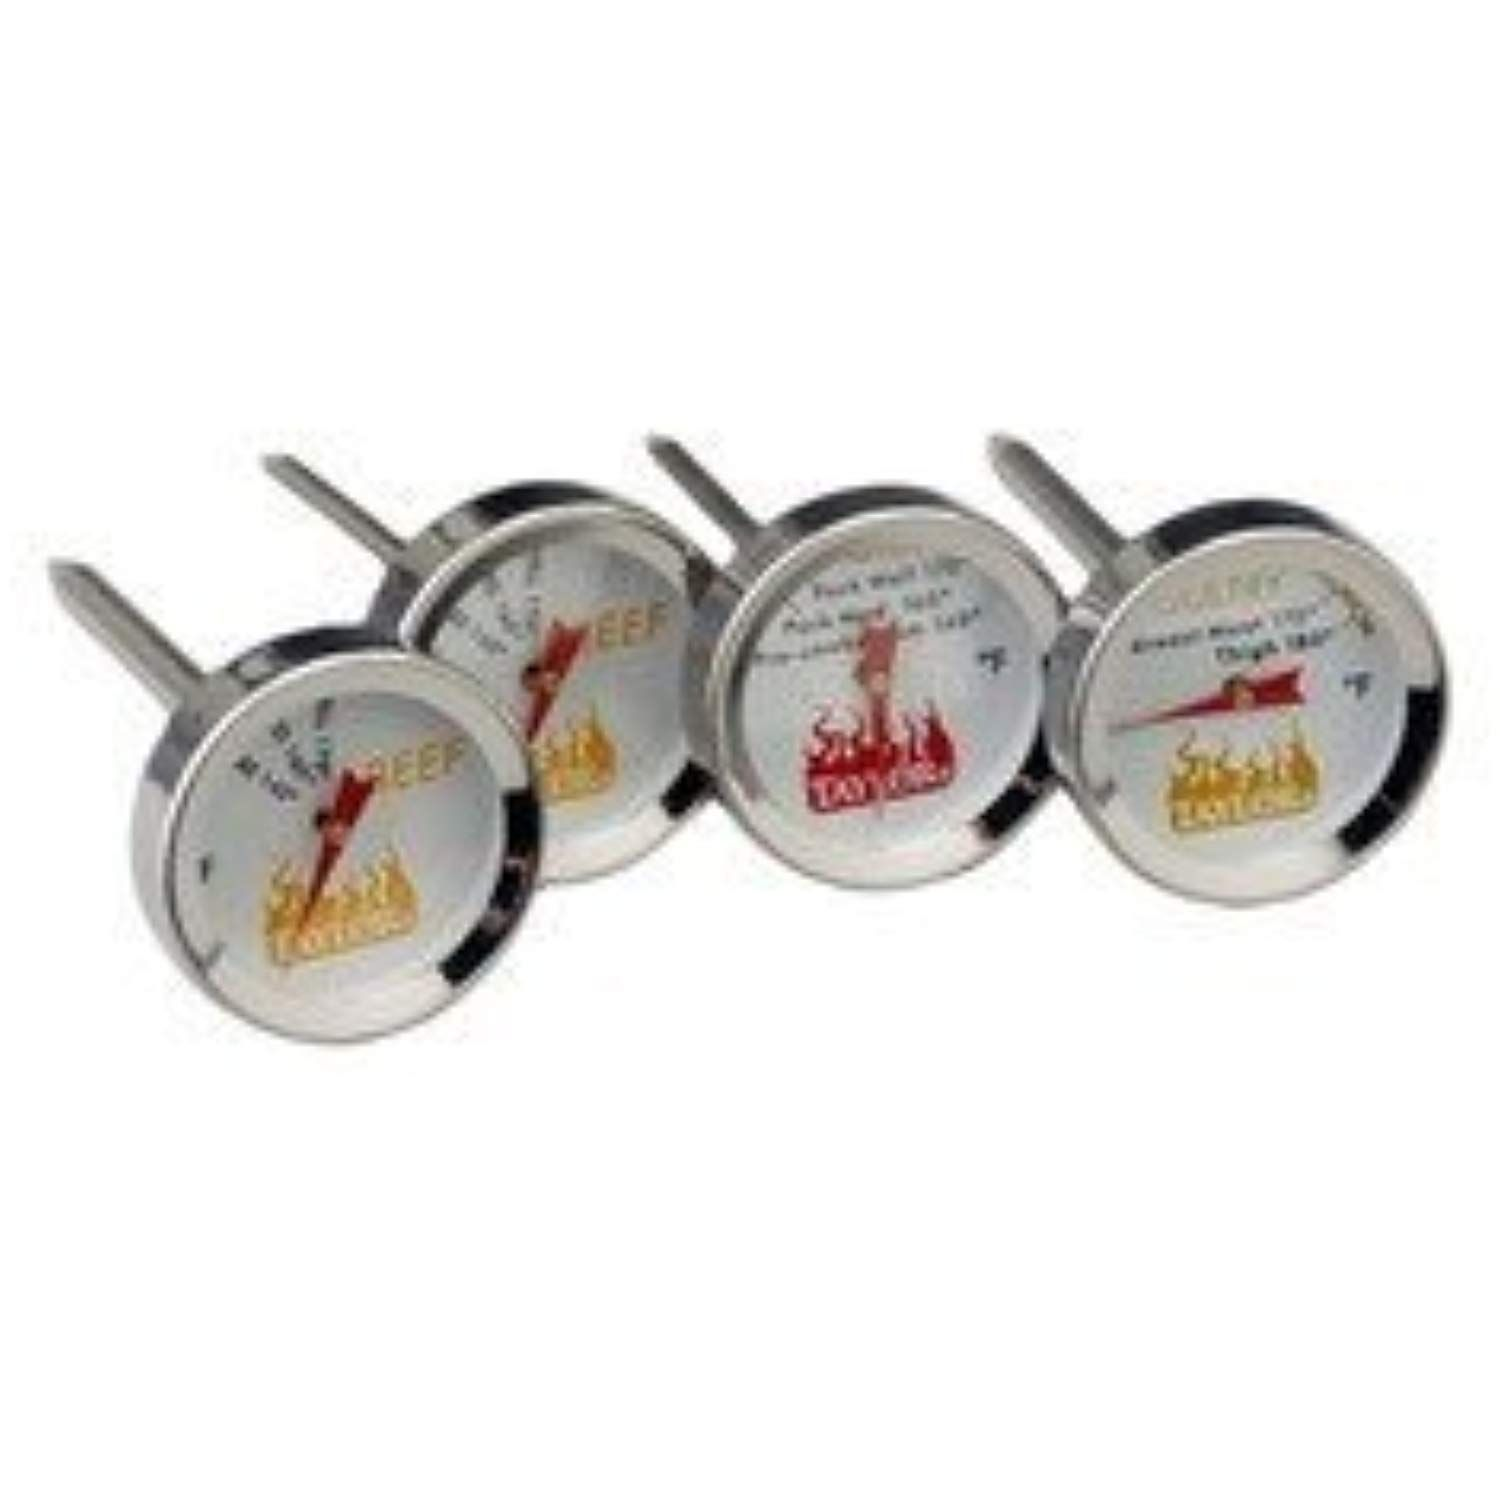 Taylor grilling meat thermometers 4 pc set